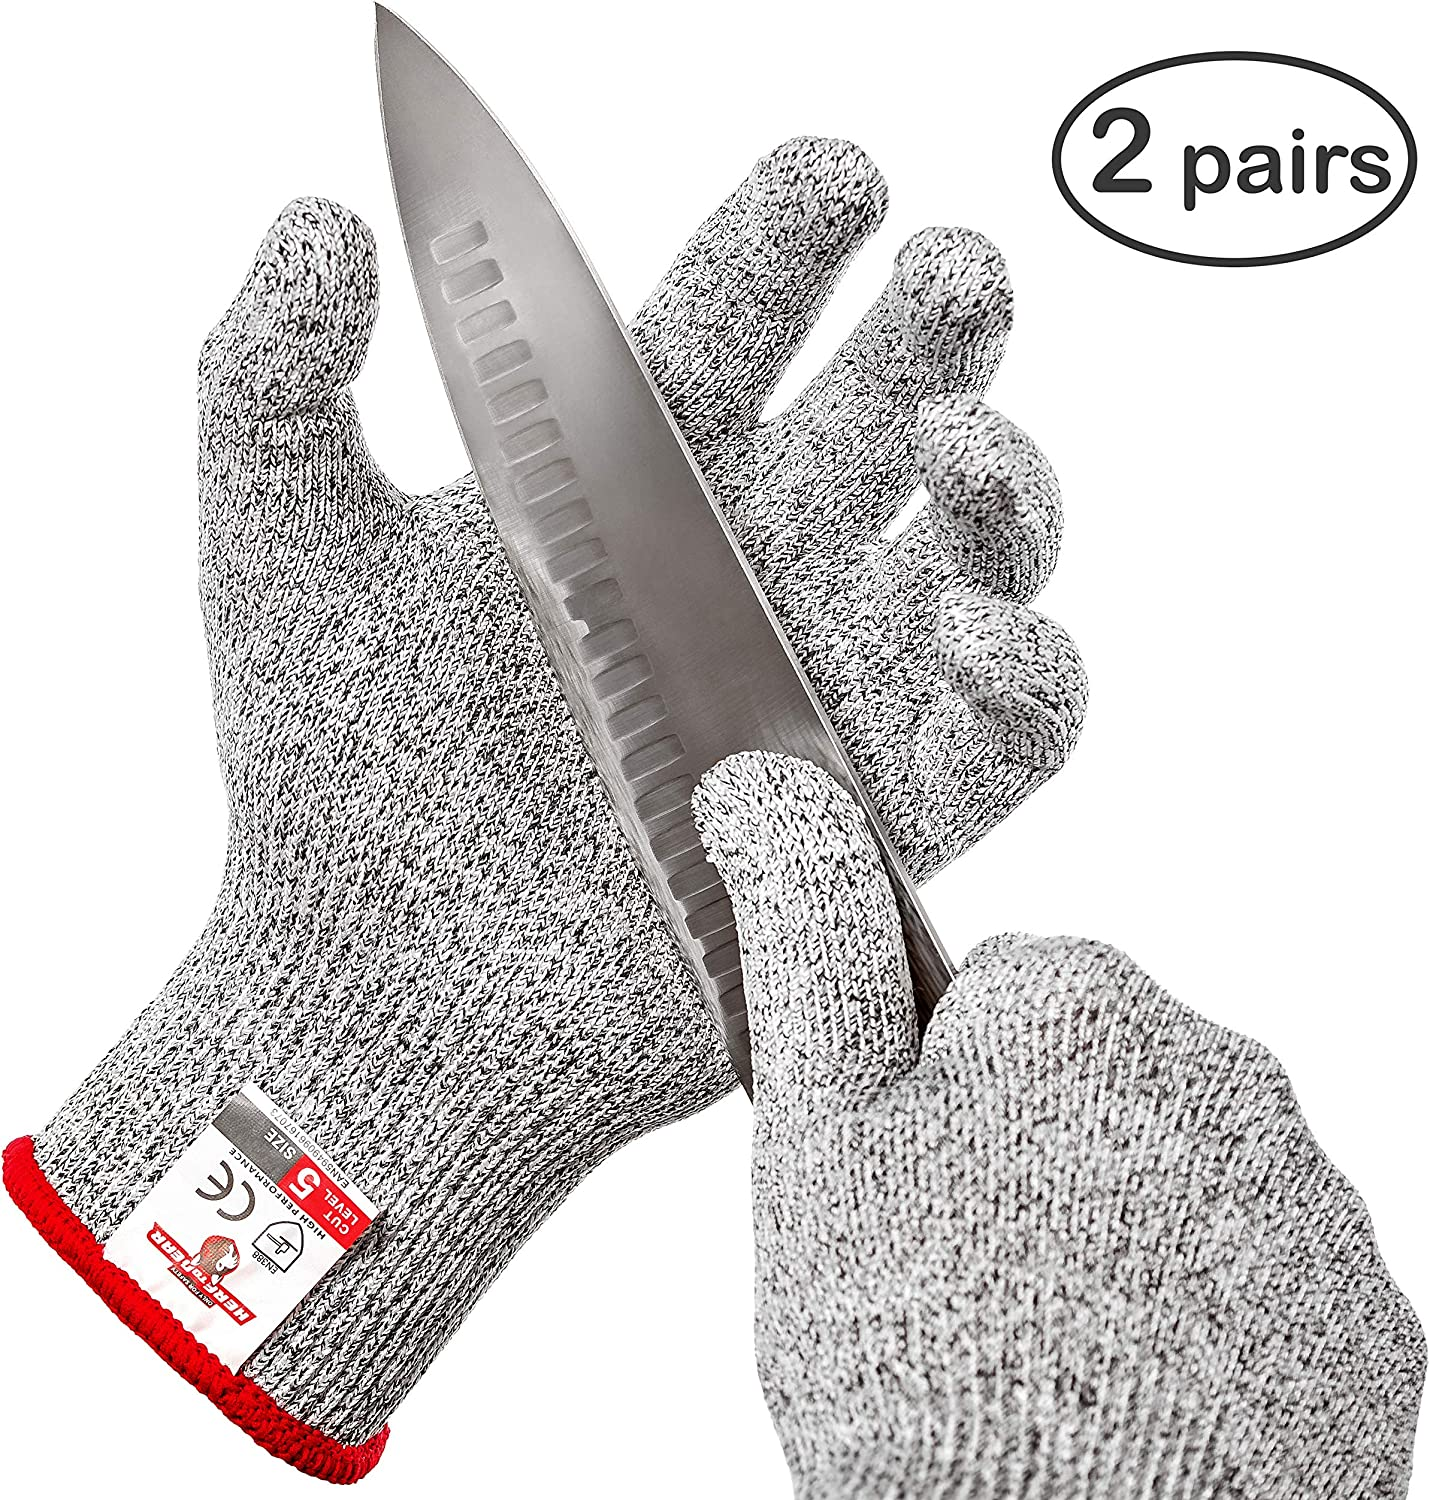 HereToGear Cut Resistant Gloves - 2 PAIRS XL - Food Grade, Level 5 Protection, Safety for Chef using Mandoline Slicers - FDA Test